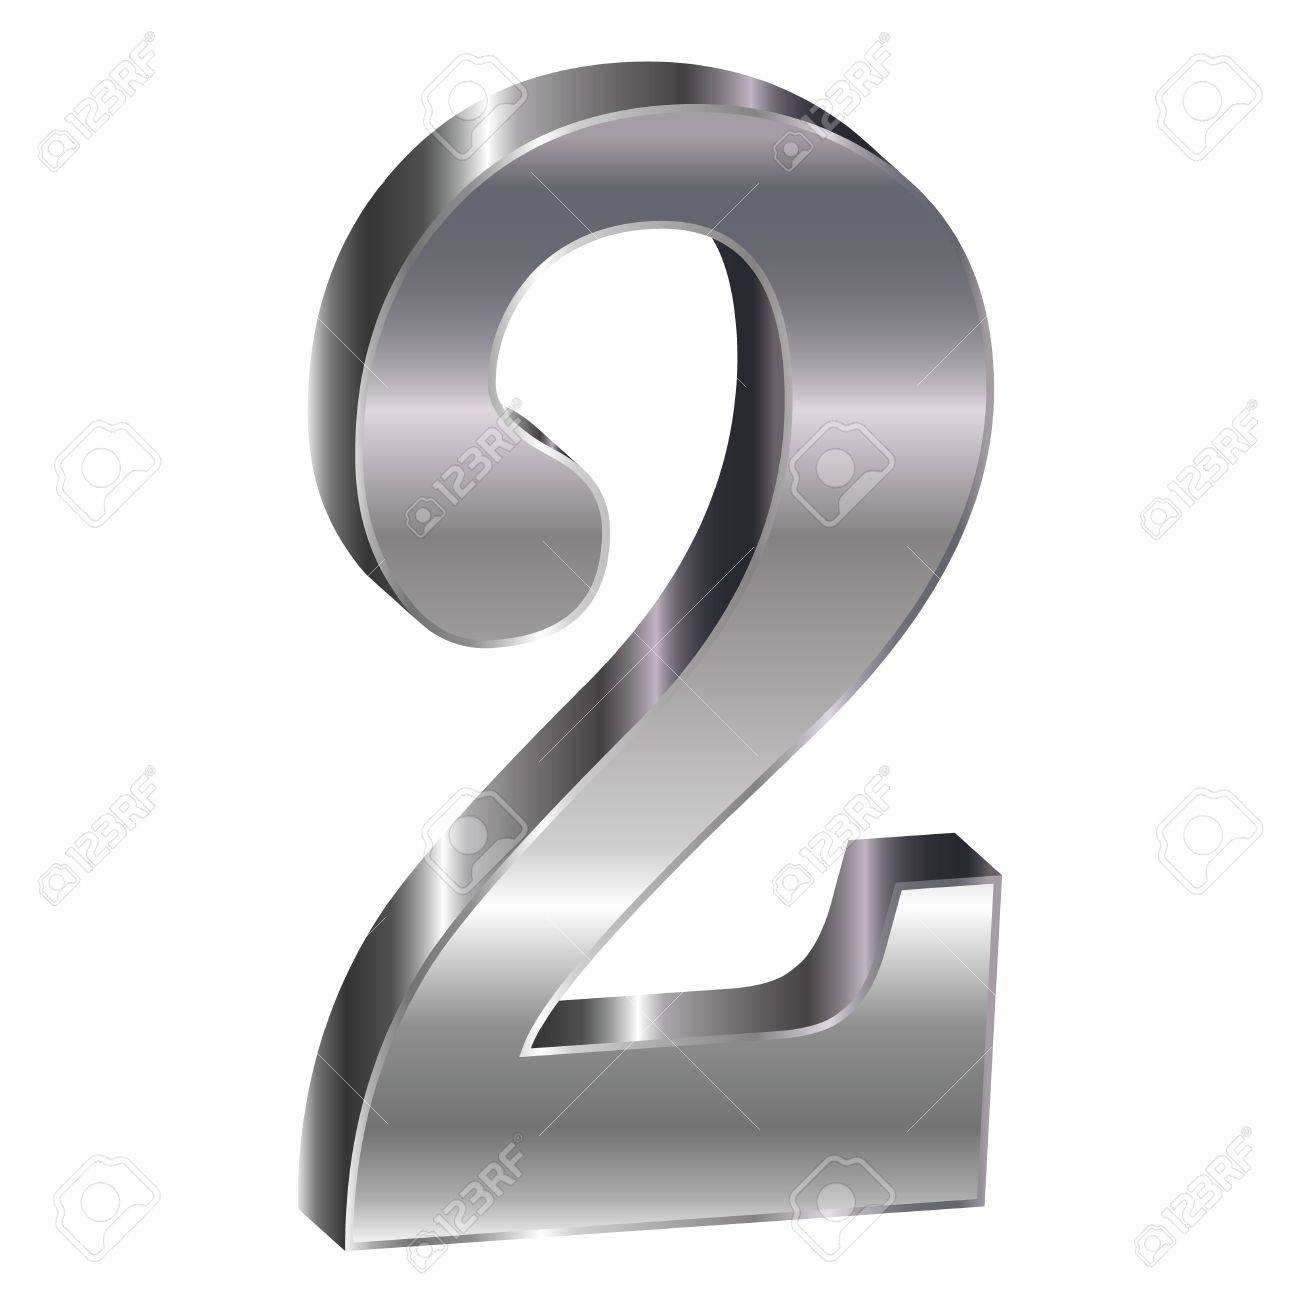 Silver Emblem Number Royalty Free Cliparts Vectors And Stock - 2